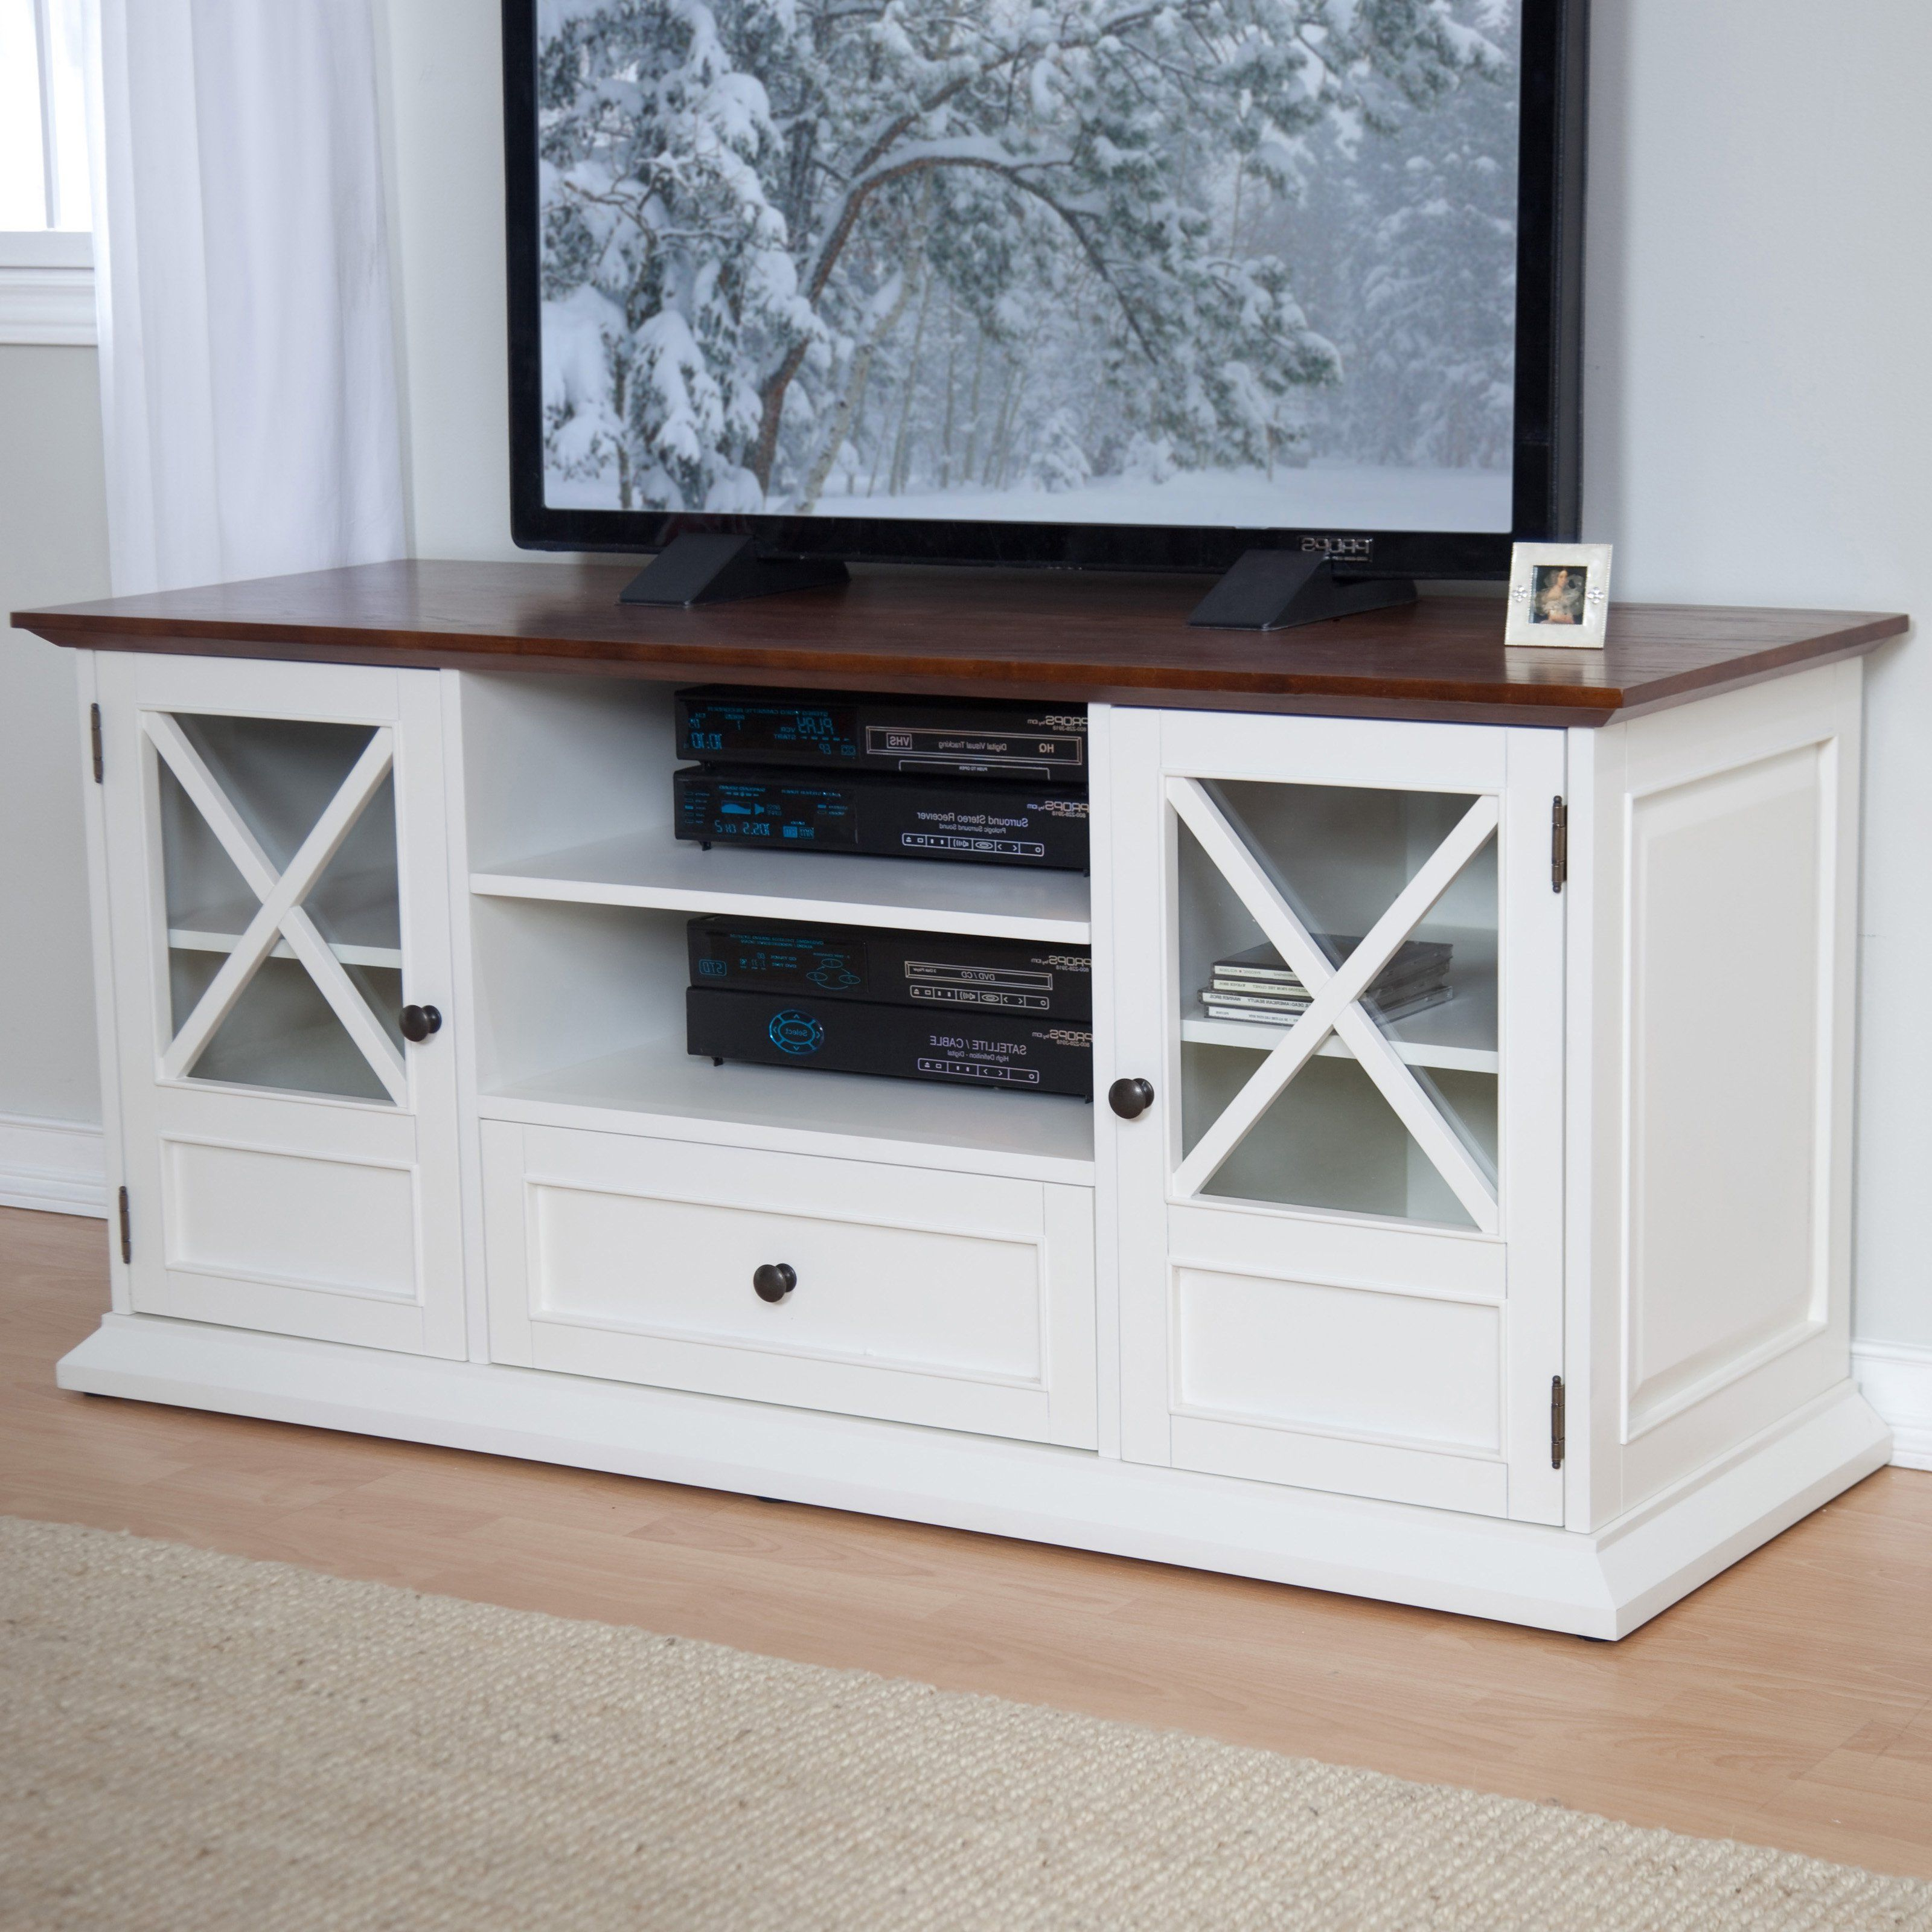 Pinterest Throughout Recent White Wood Tv Stands (View 9 of 20)